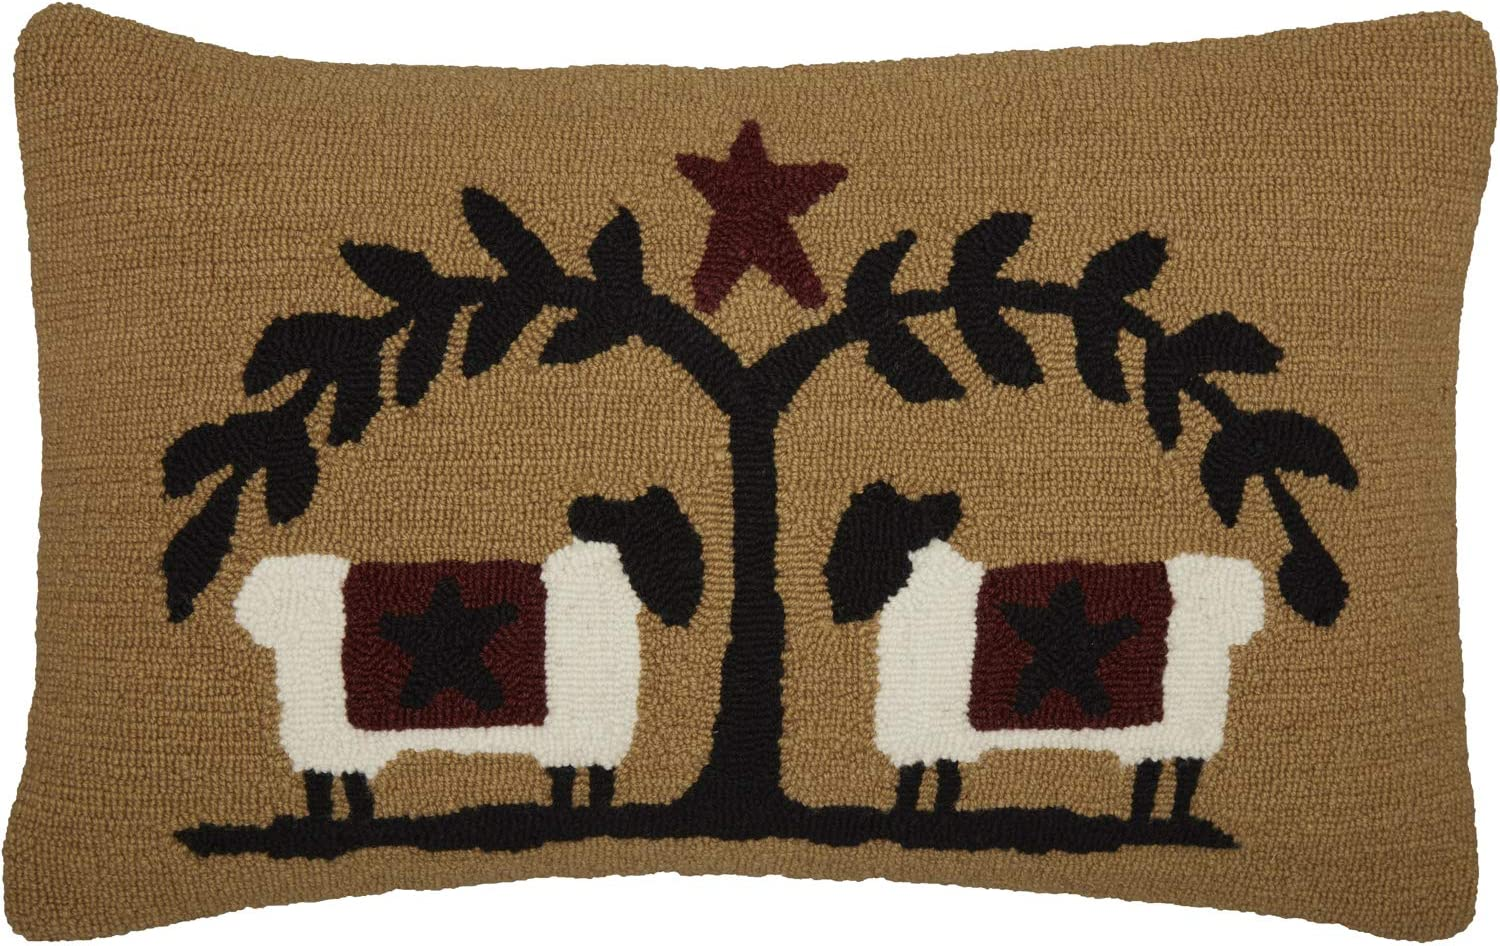 VHC Brands Heritage Farms Sheep and Star Hooked Graphic/Print Textured Wool Primitive Bedding Hand Sewn 22x14 Filled Pillow, Mustard Tan